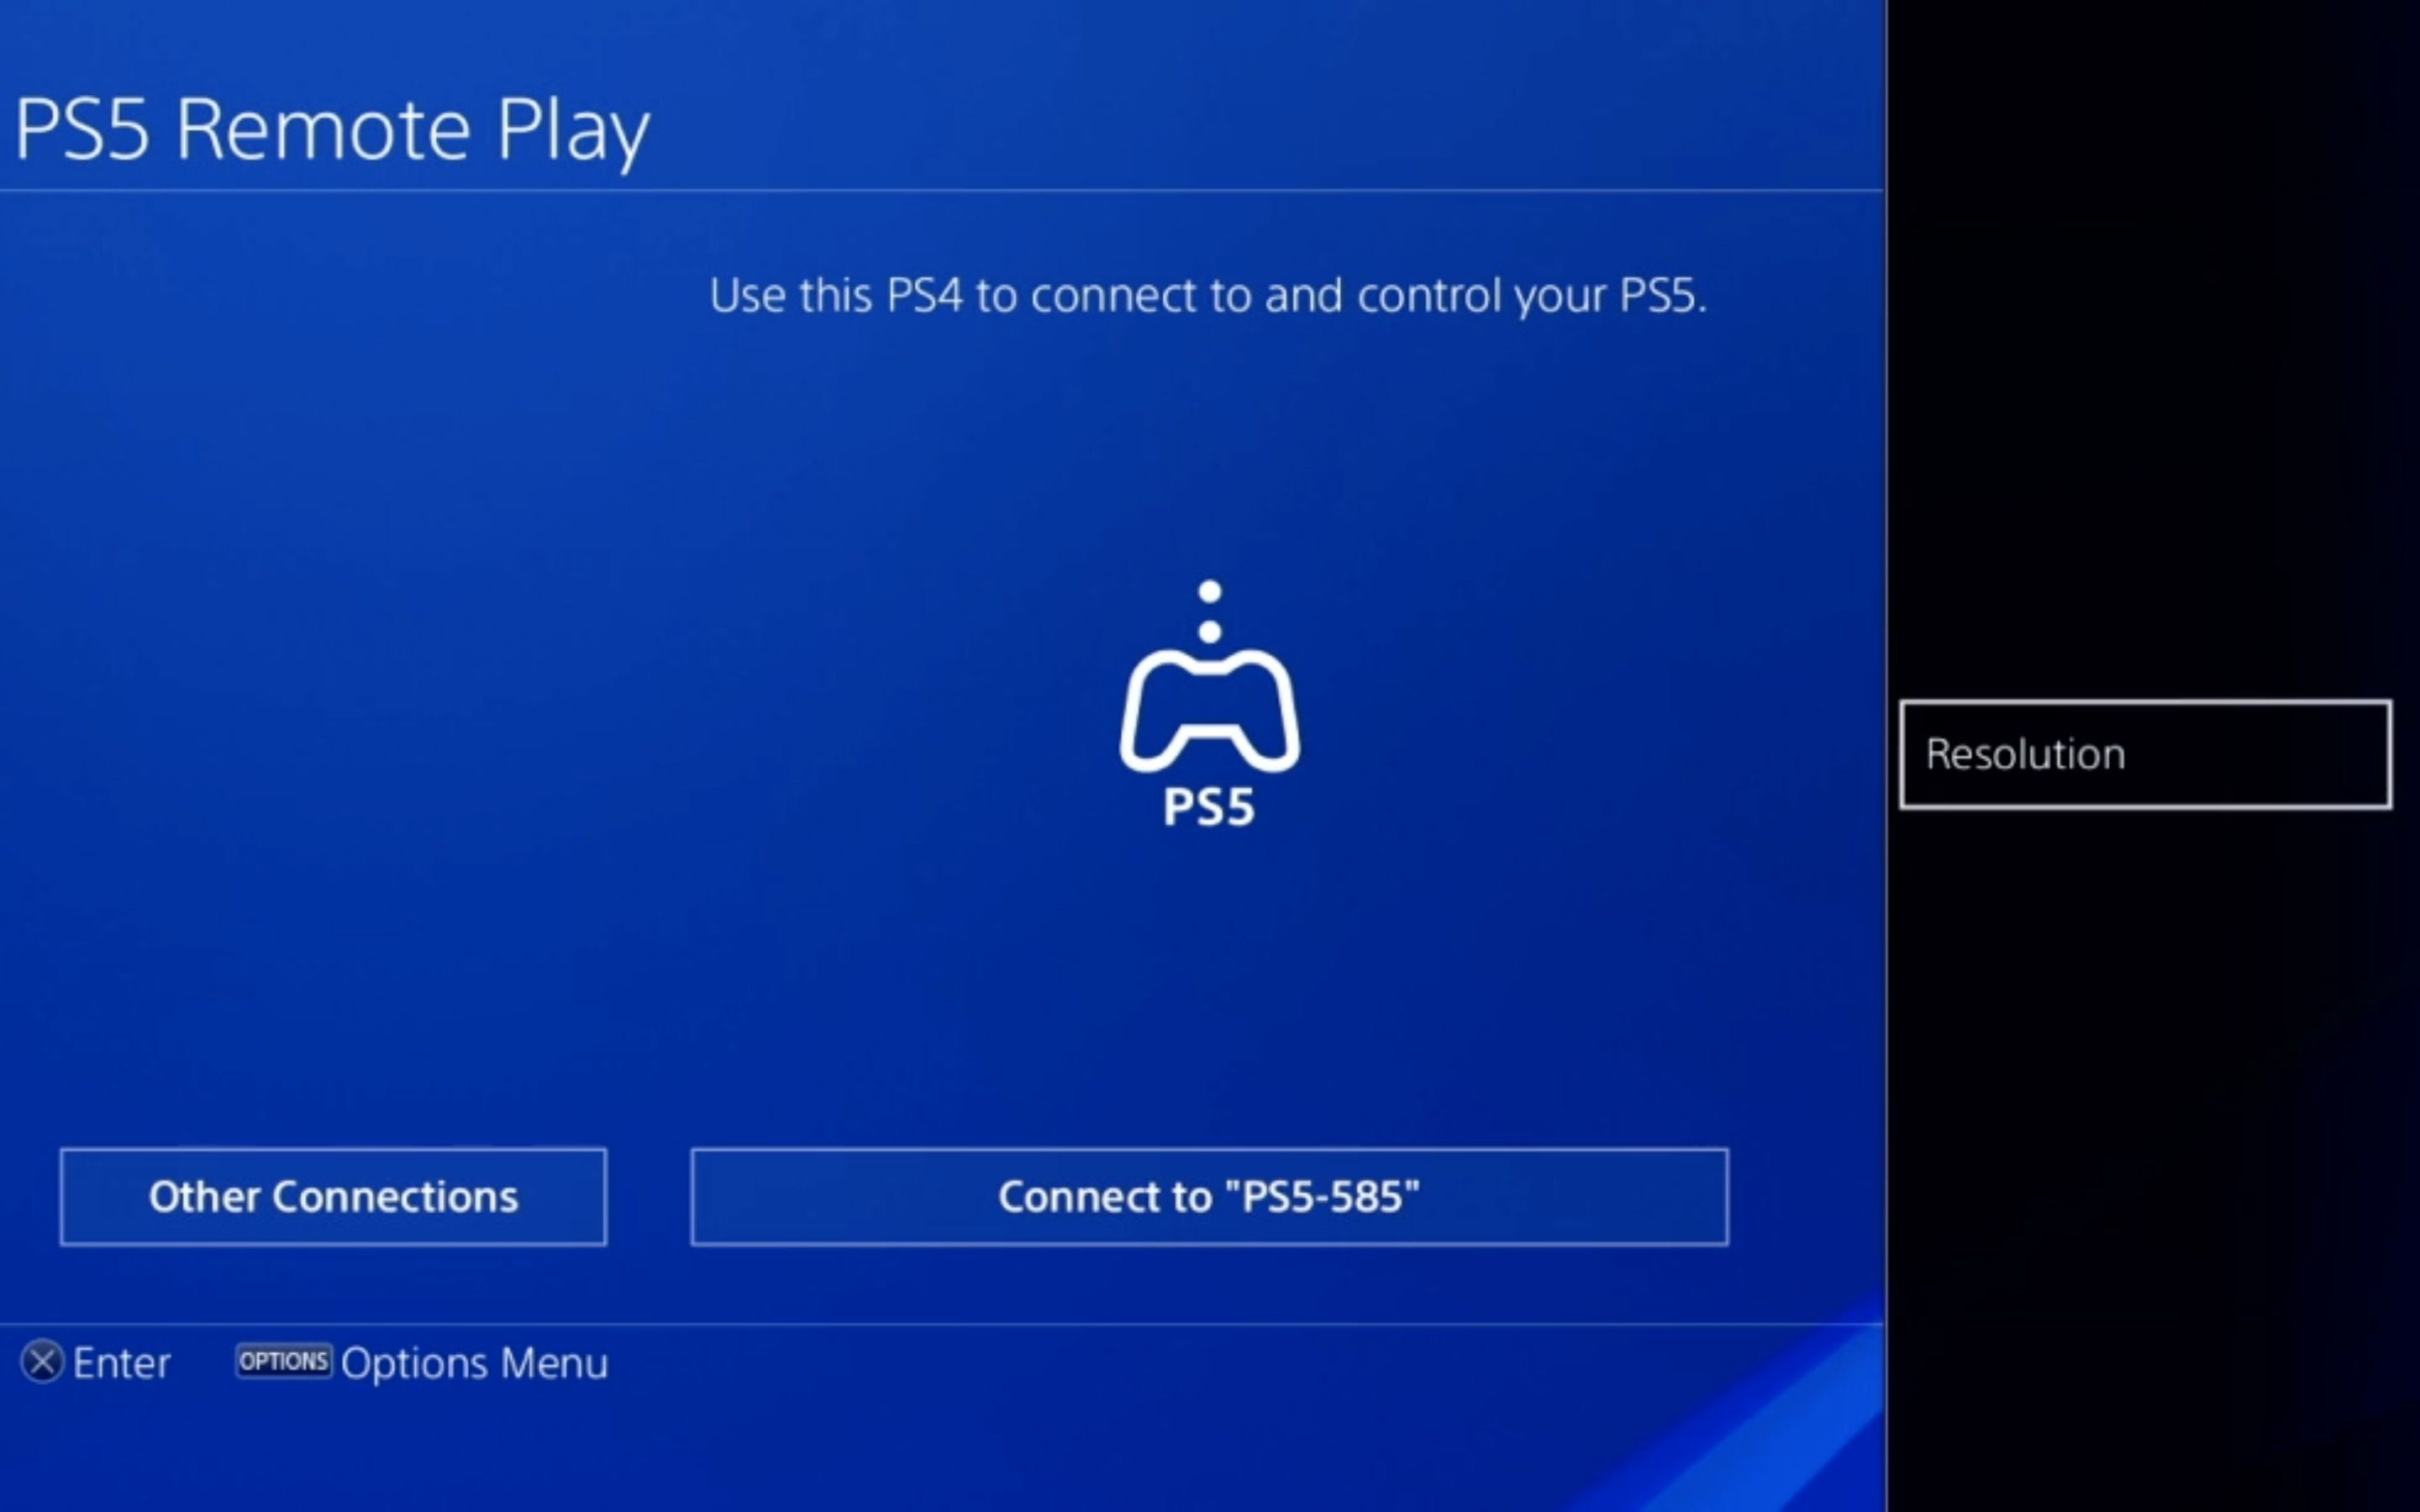 The Resolution option in PS5 Remote Play